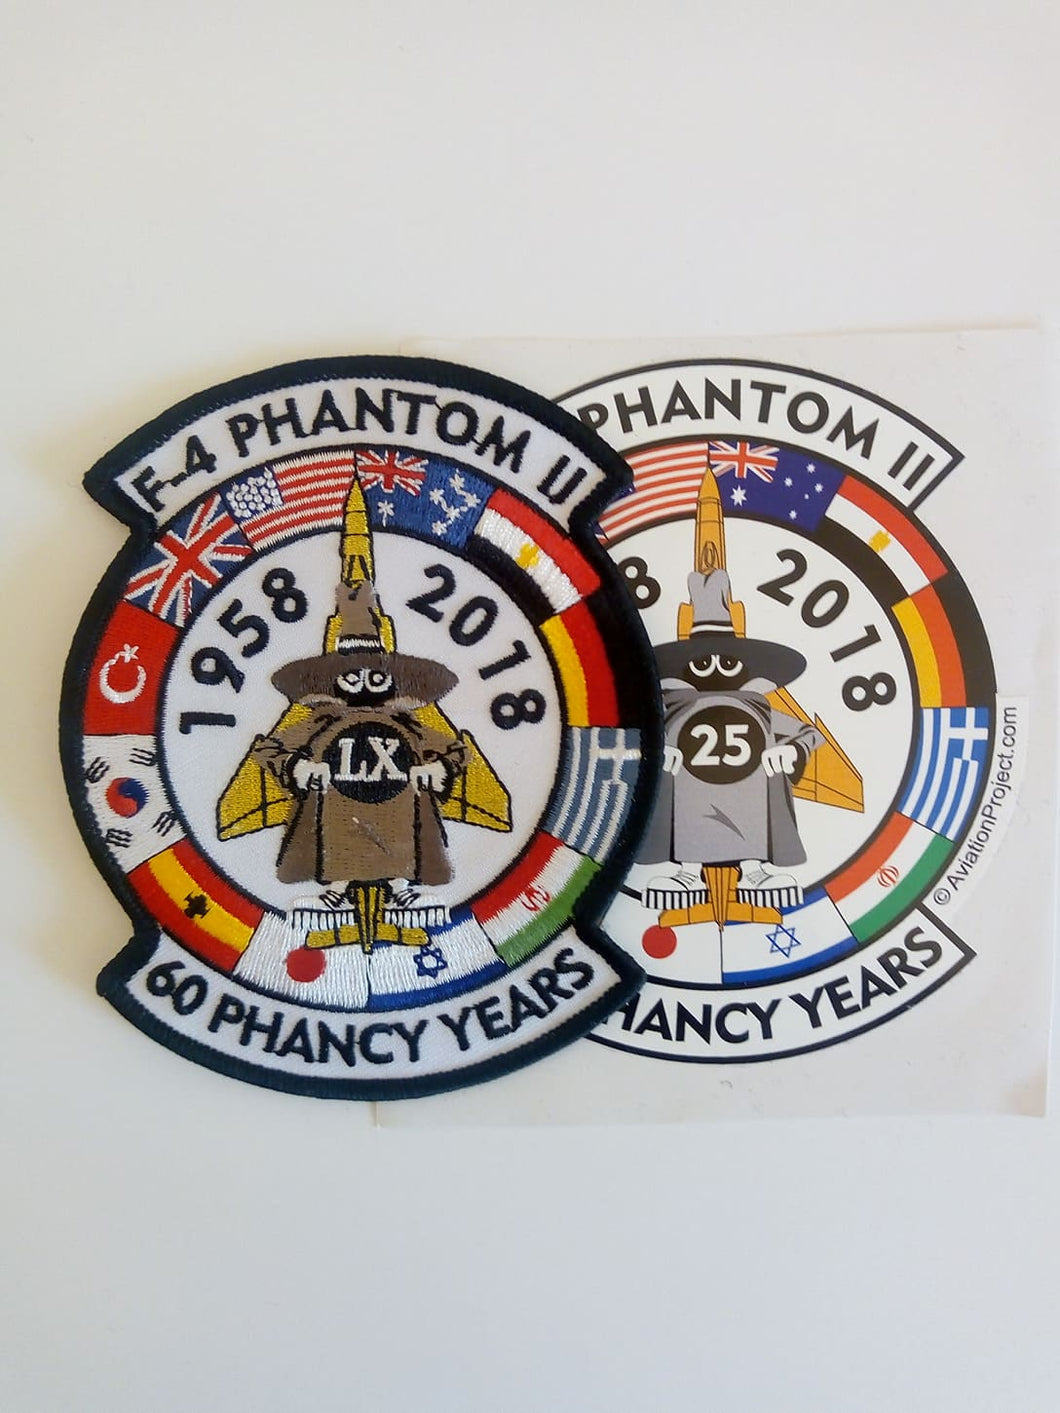 F-4 PHANTOM II 1958-2018 60 PHANCY YEARS + STICKER